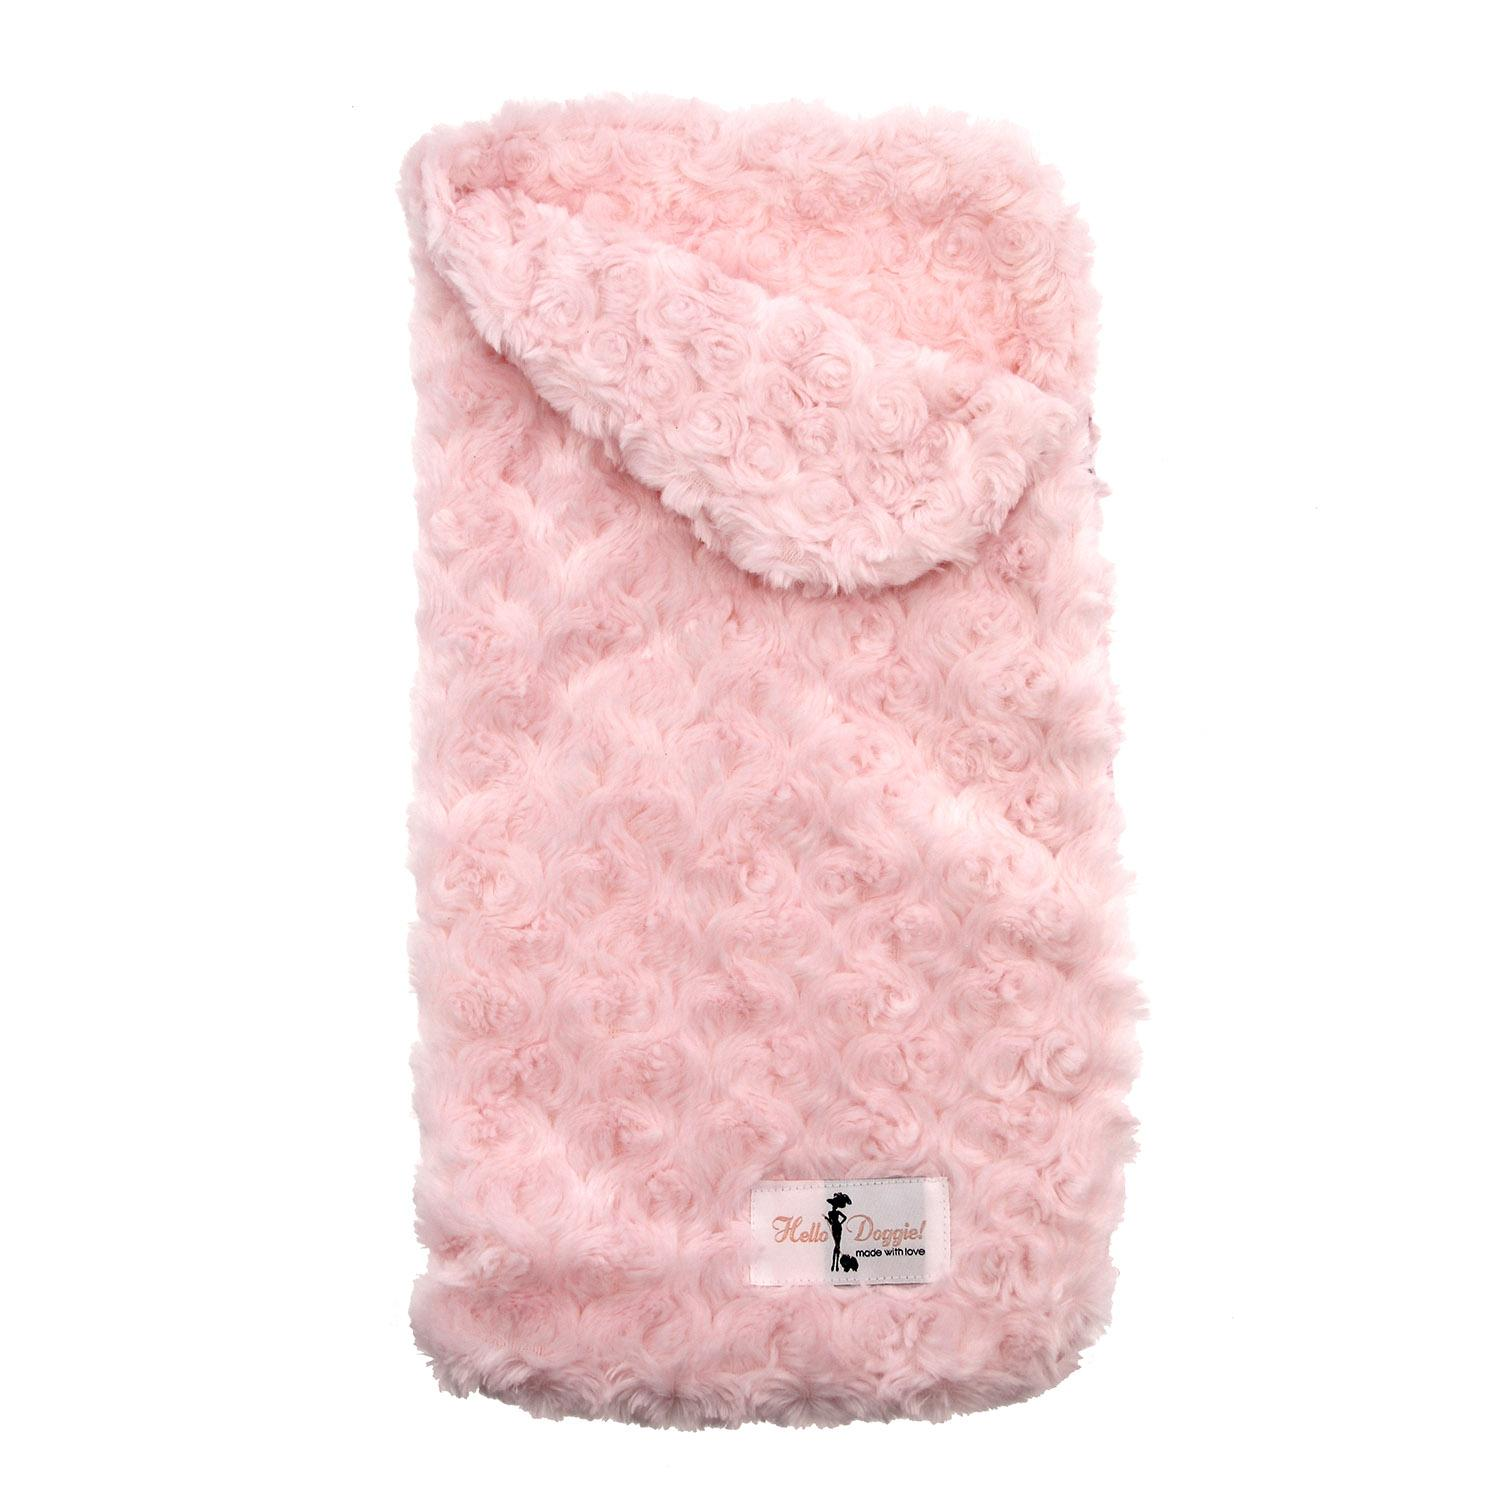 Snuggle Pup Sleeping Bag Dog Bed by Hello Doggie - Rosebud Pink